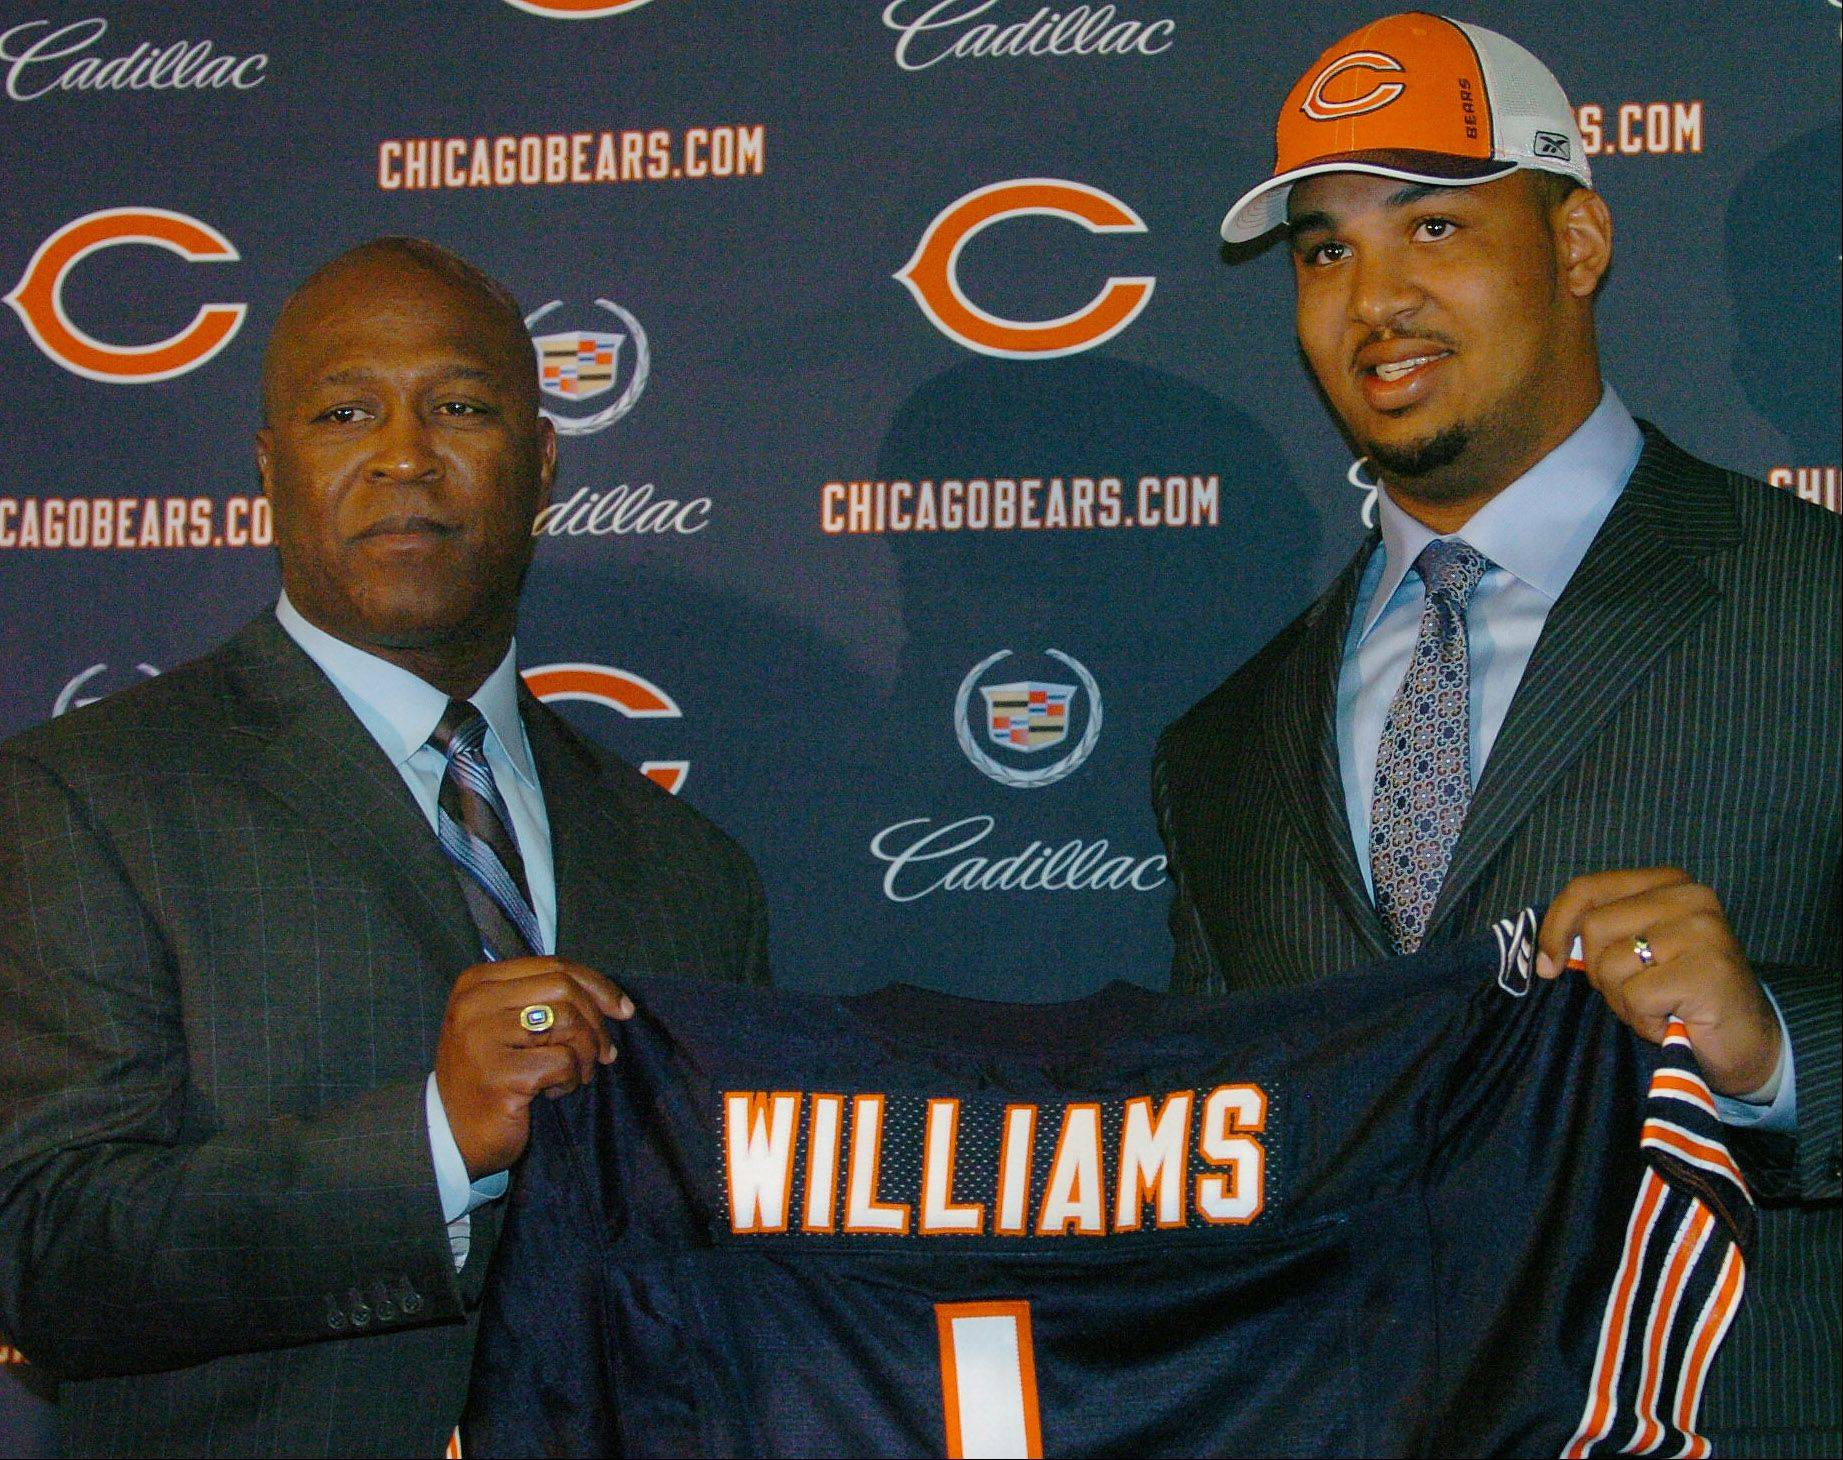 Bears number one draft choice Chris Williams is introduced at Halas Hall by Bears coach Lovie Smith.